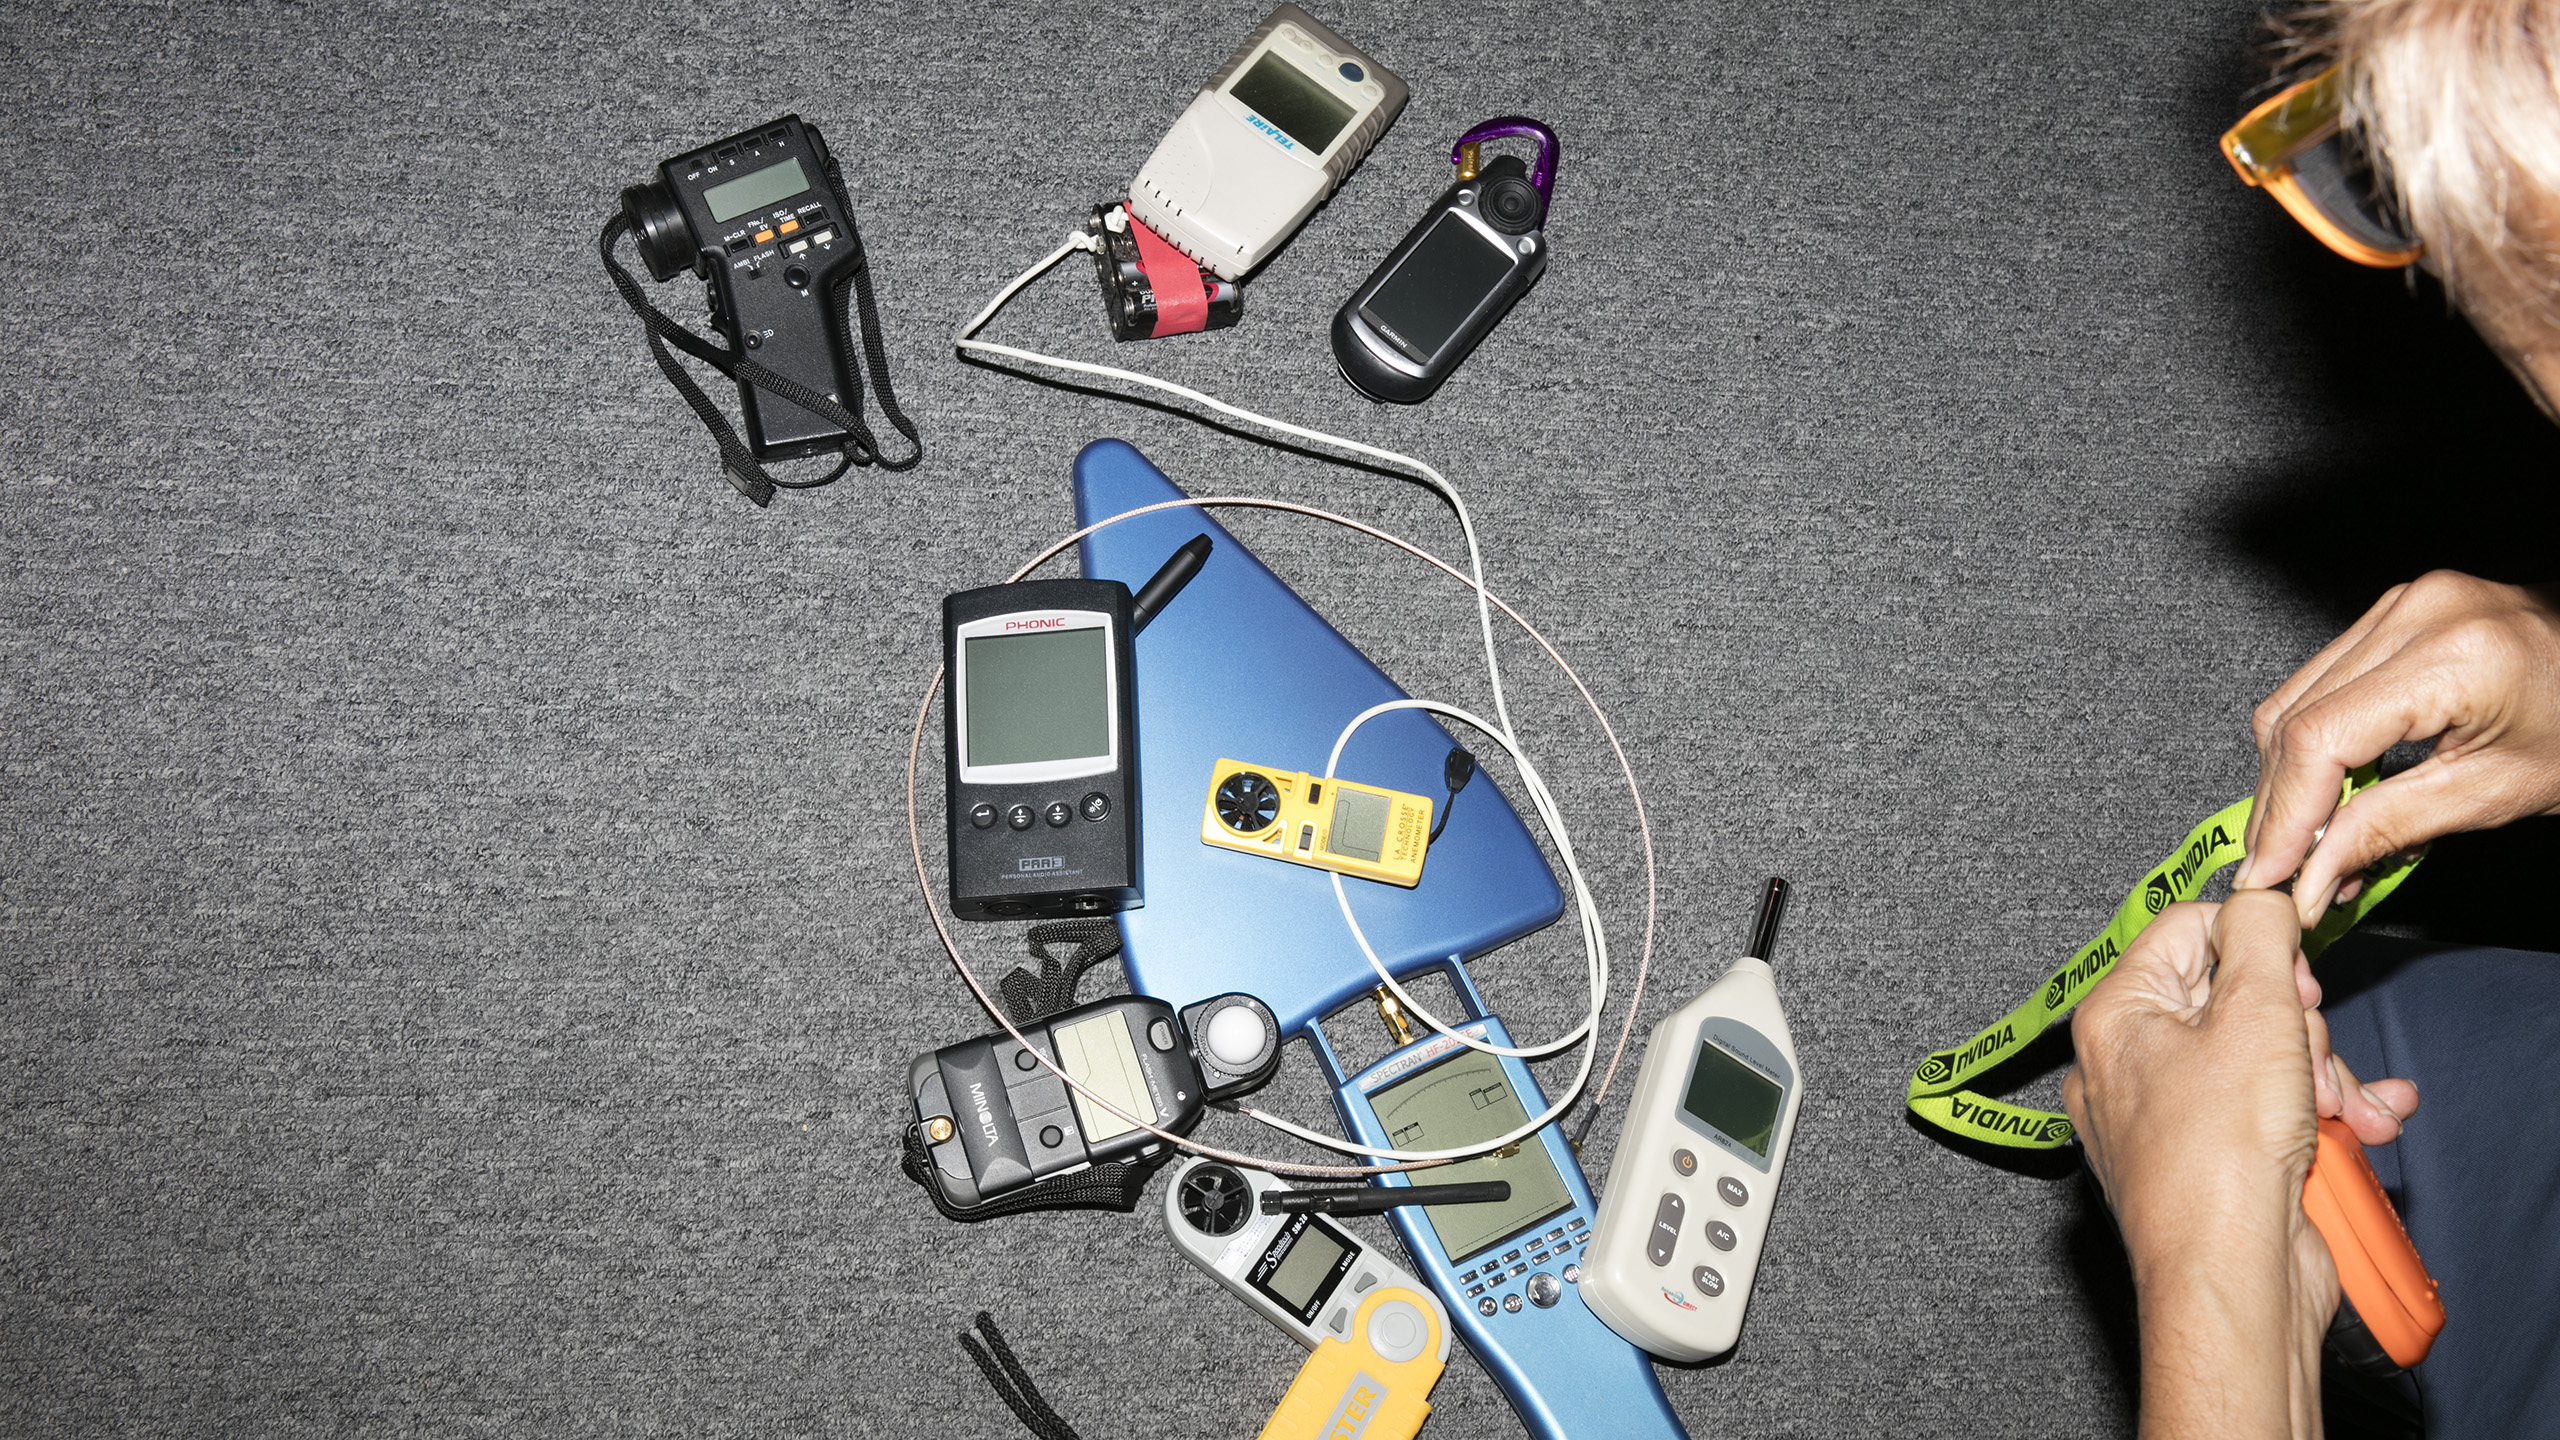 My collection of sensors circa 2007